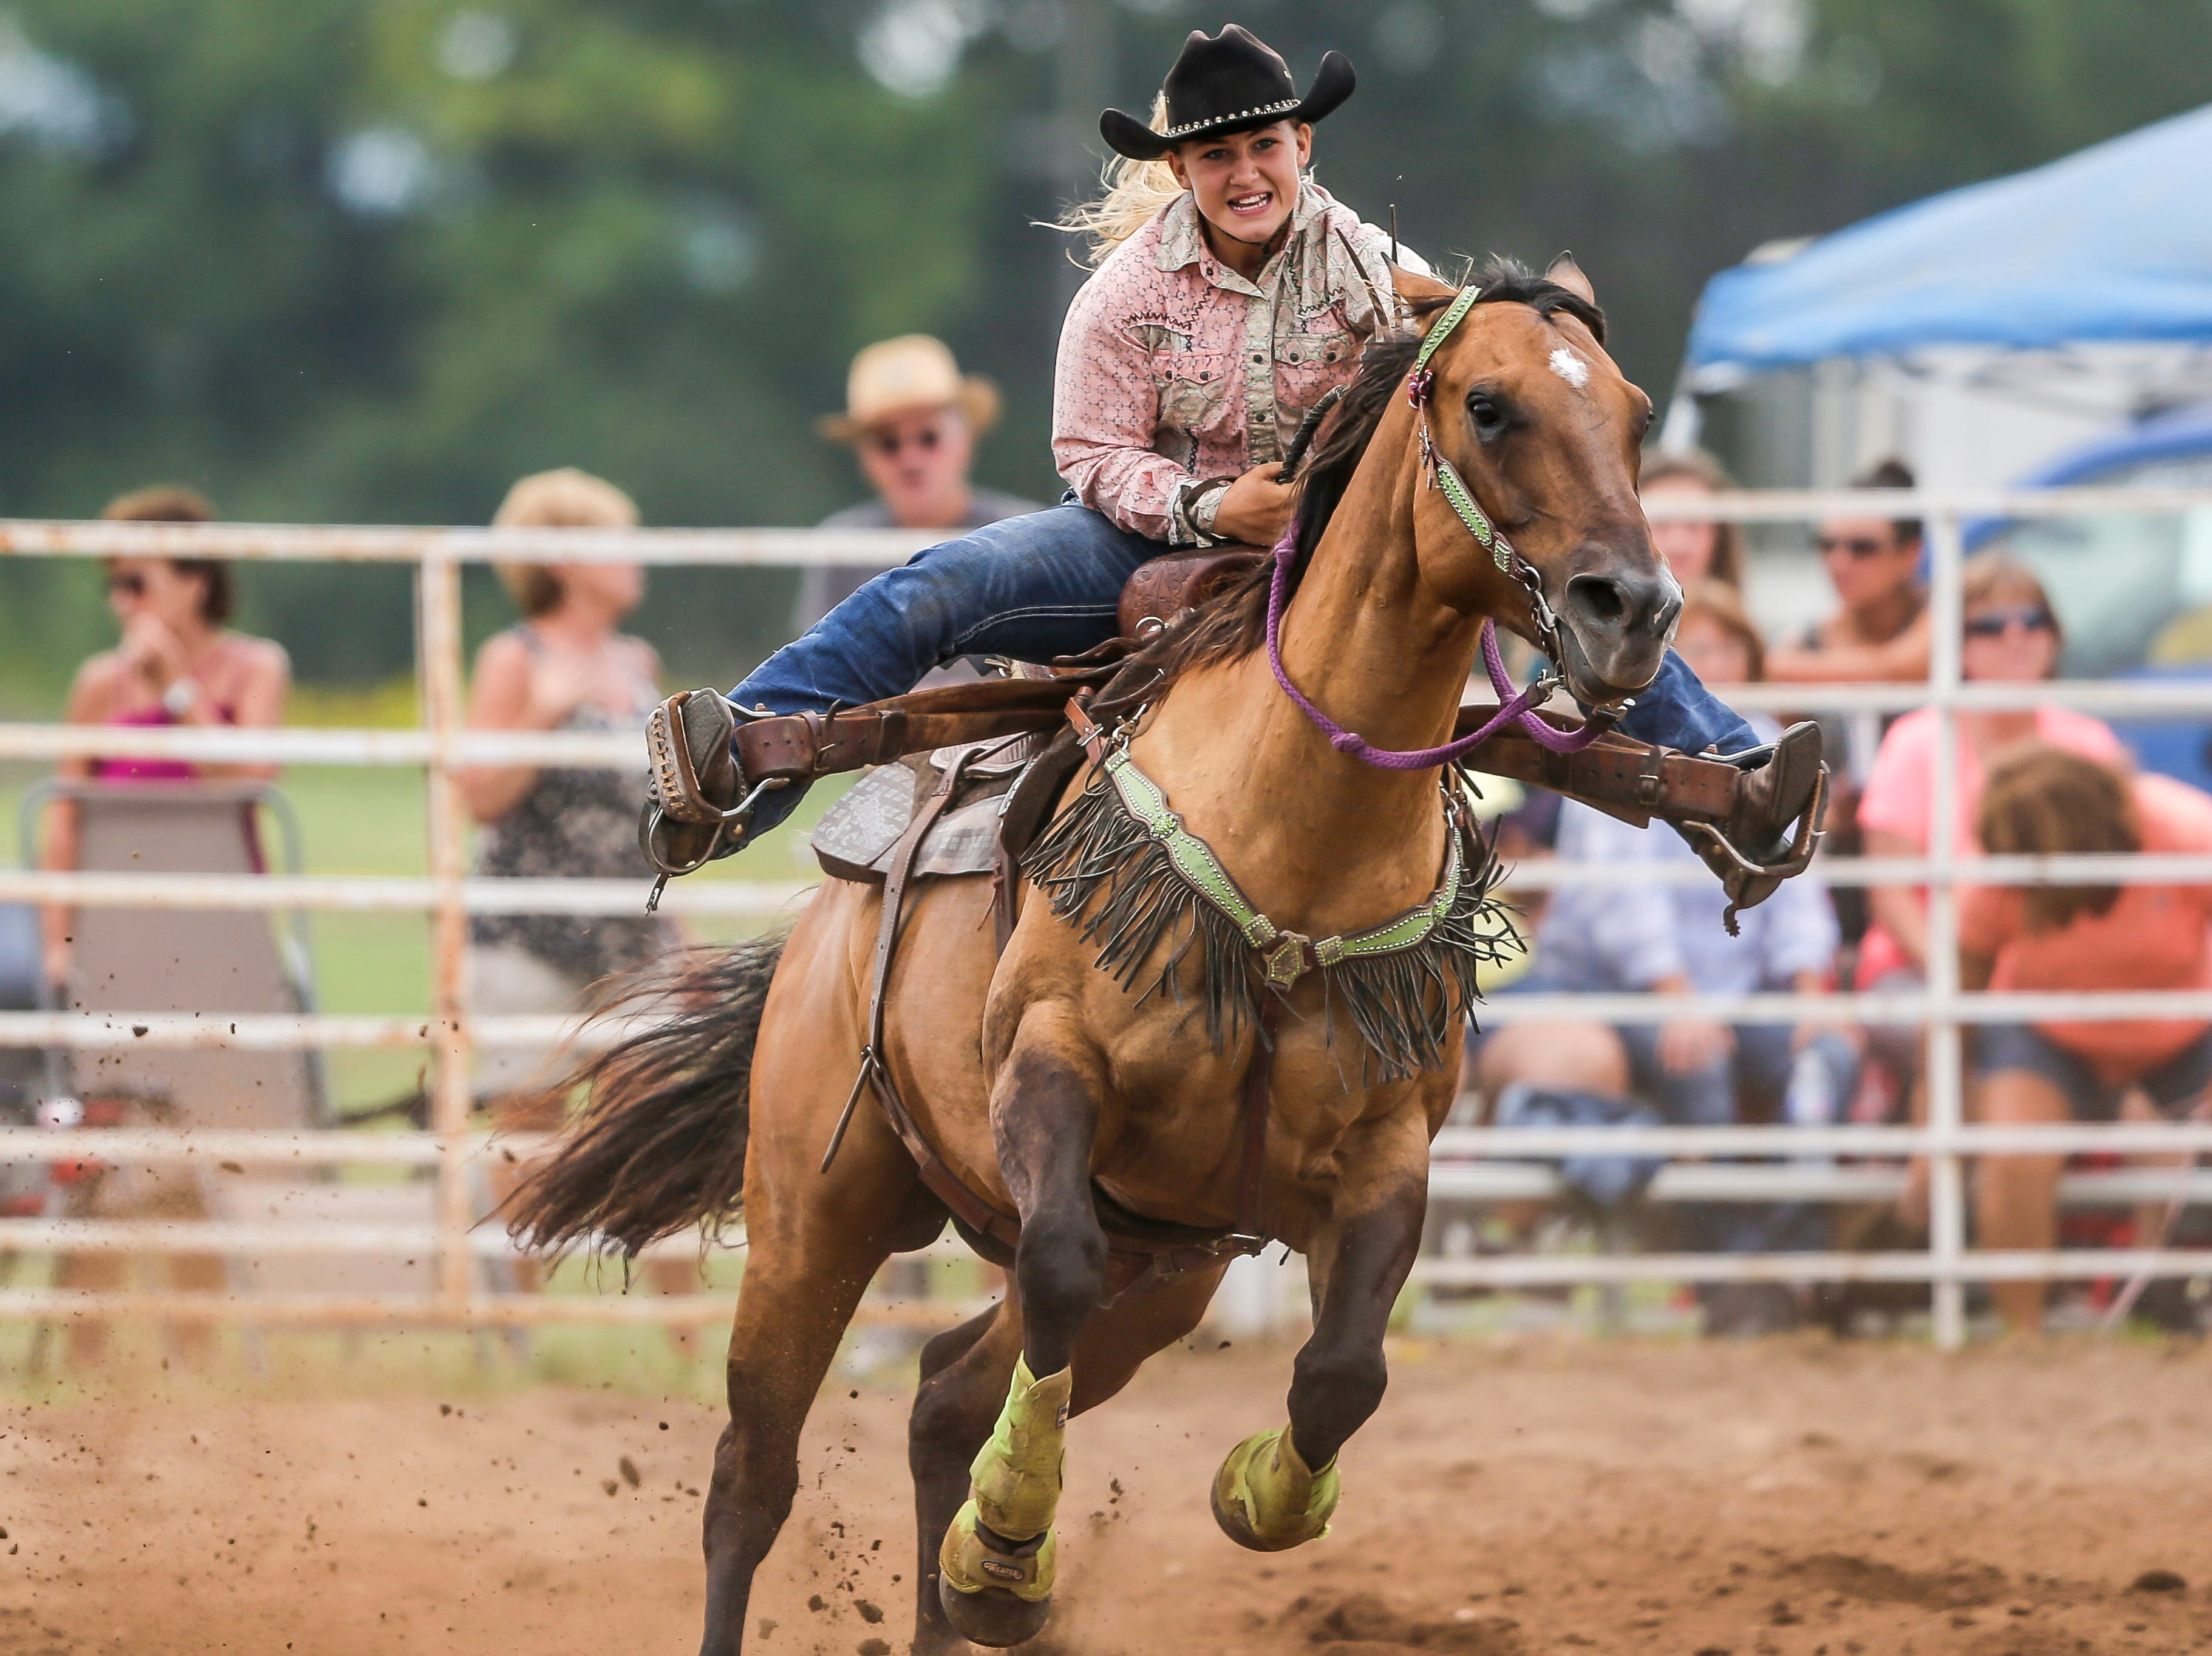 A competitor competes in the barrel race during the Amherst Little Britches Wisconsin Rodeo in Amherst, Wis., August 17, 2018.